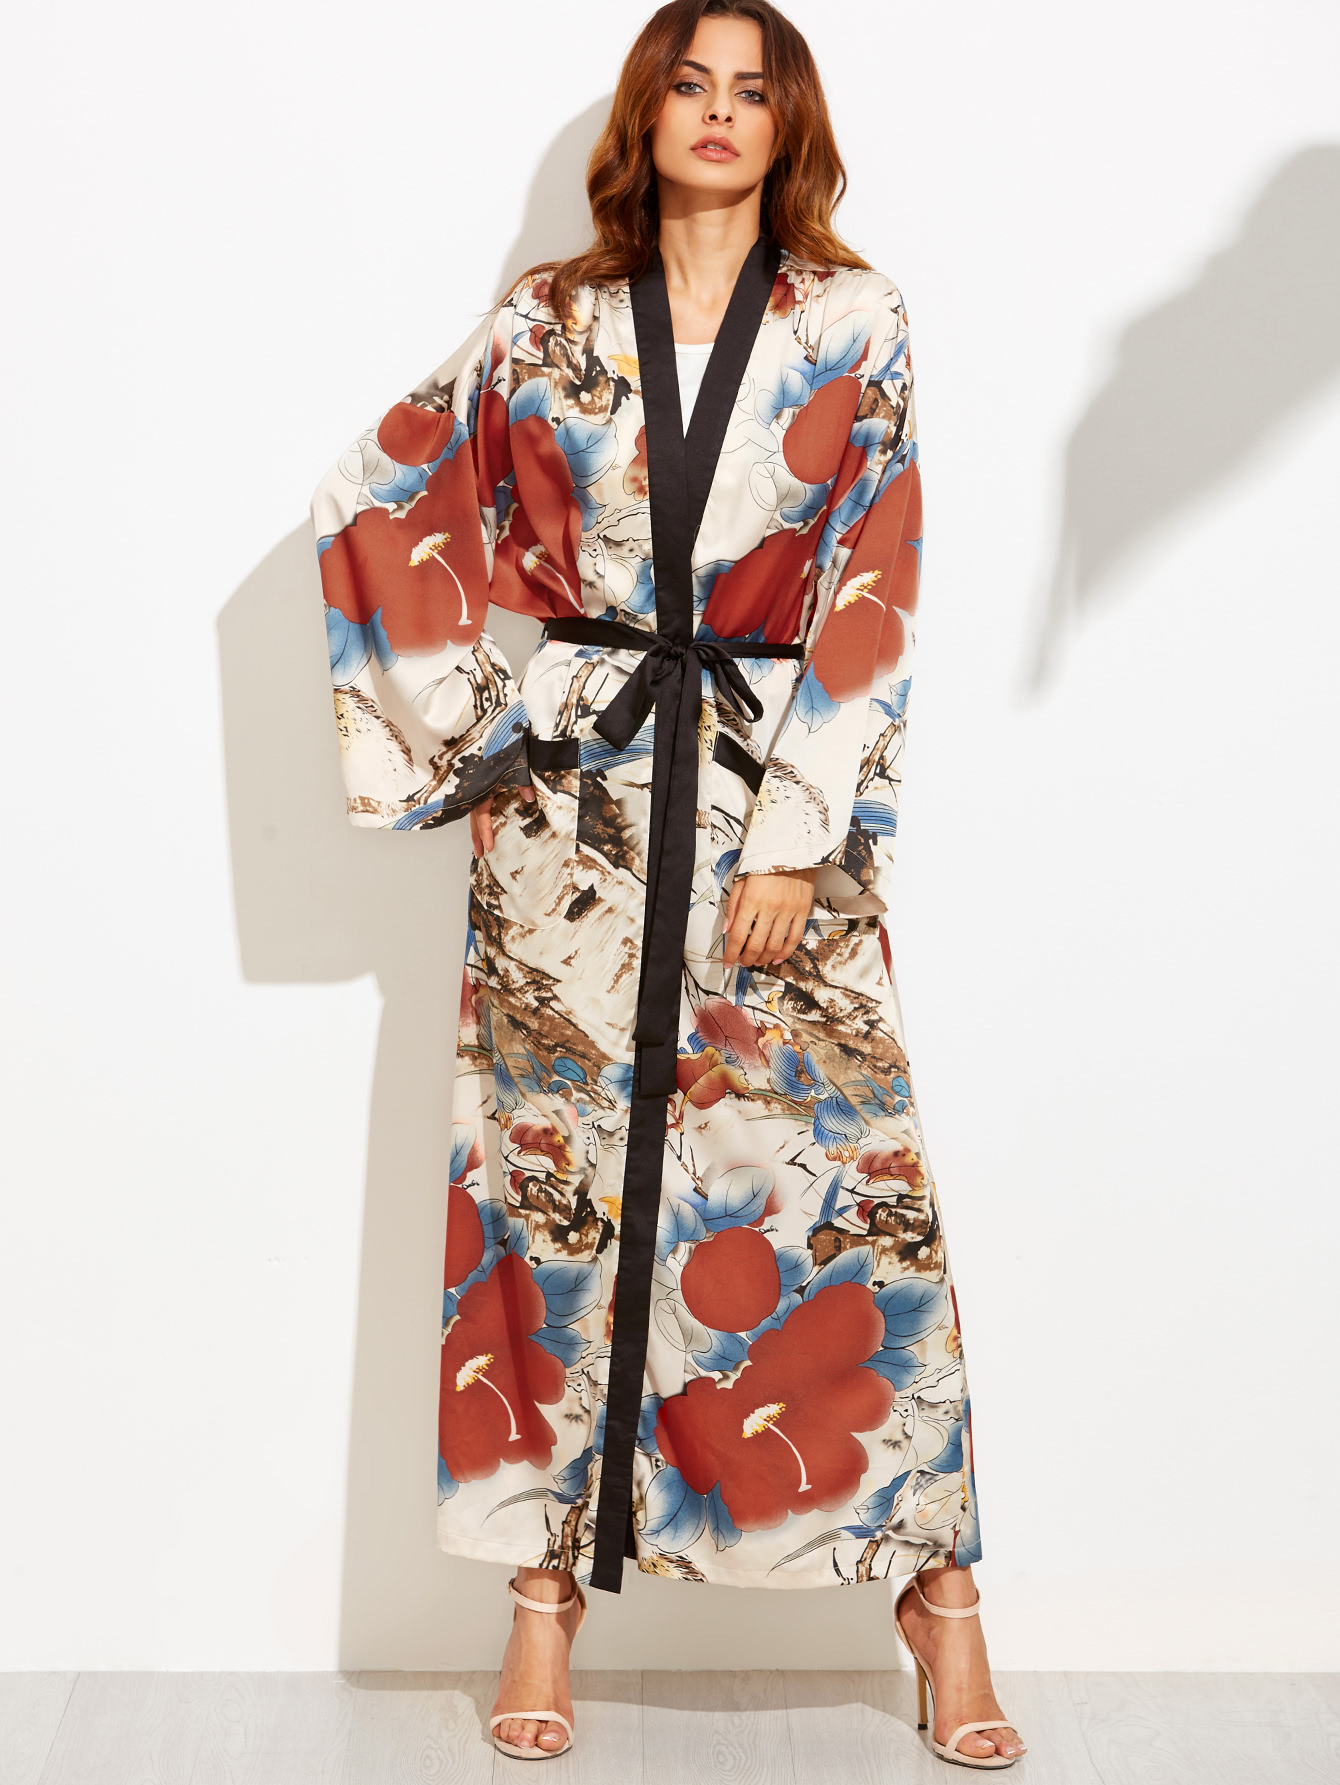 Kimonos for men should fall approximately to the ankle without tucking. A woman's kimono has additional length to allow for the ohashori, the tuck that can be seen under the obi, which is used to adjust the kimono to the smashingprogrammsrj.tk ideally tailored kimono has sleeves that fall to .